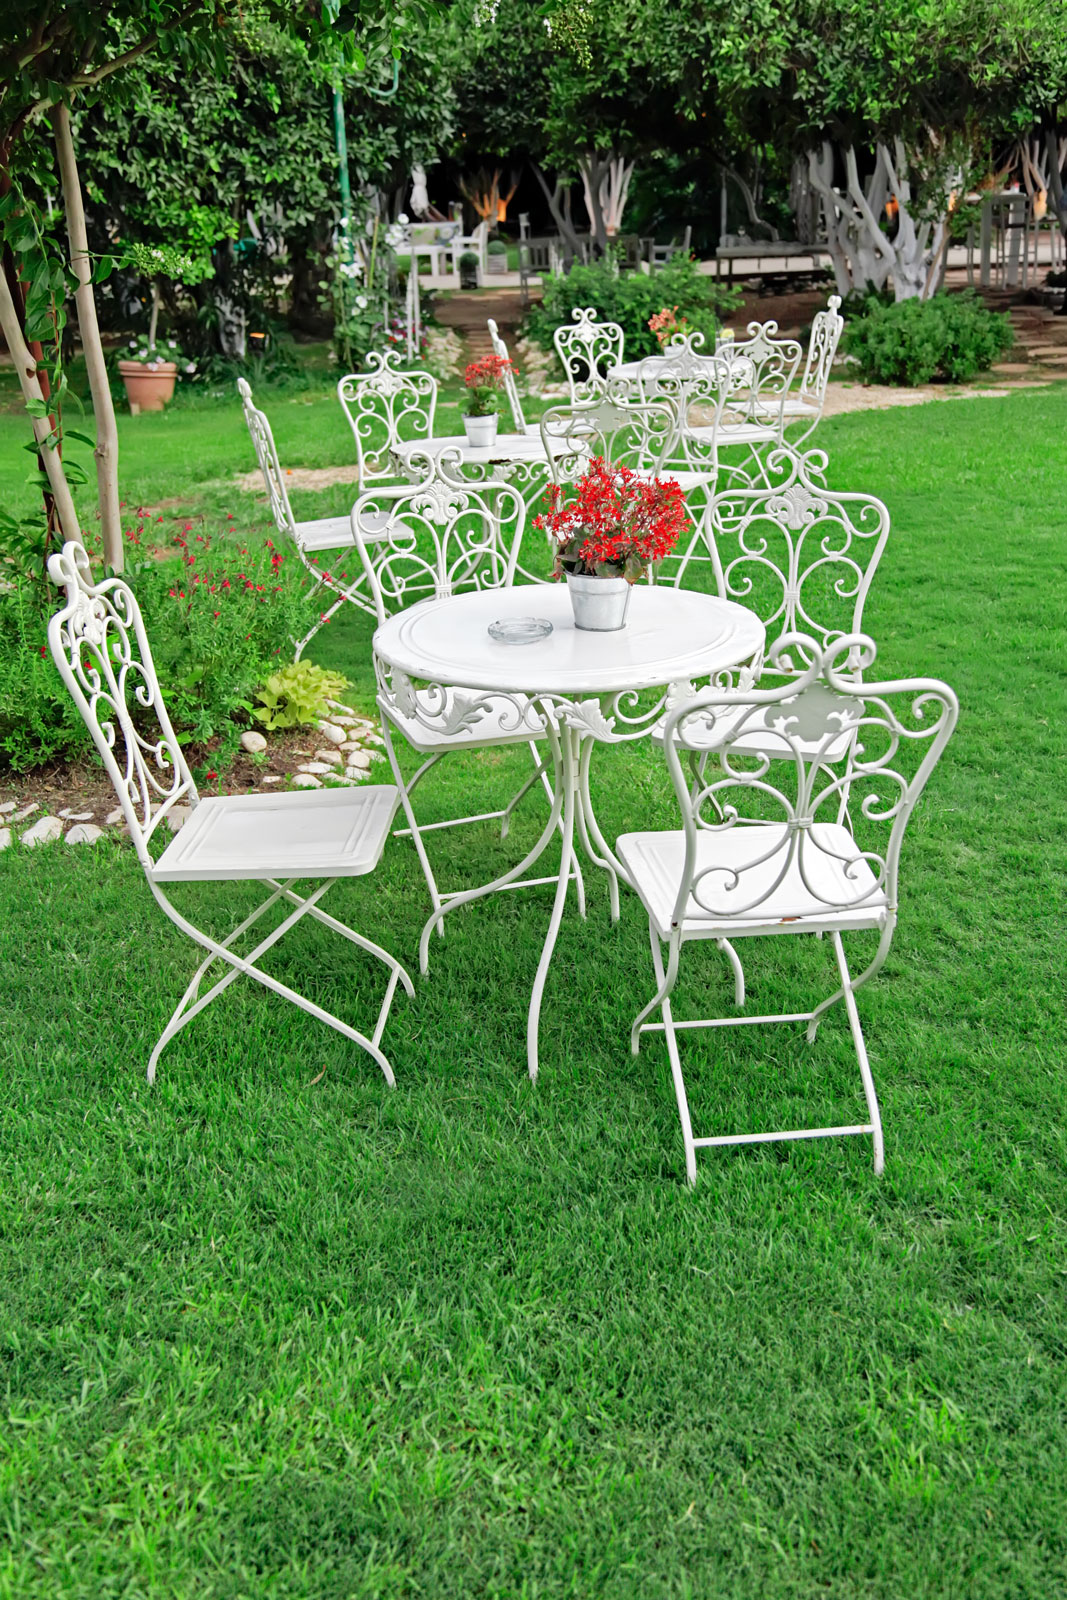 White-Patio-Tables-1067x160.jpg